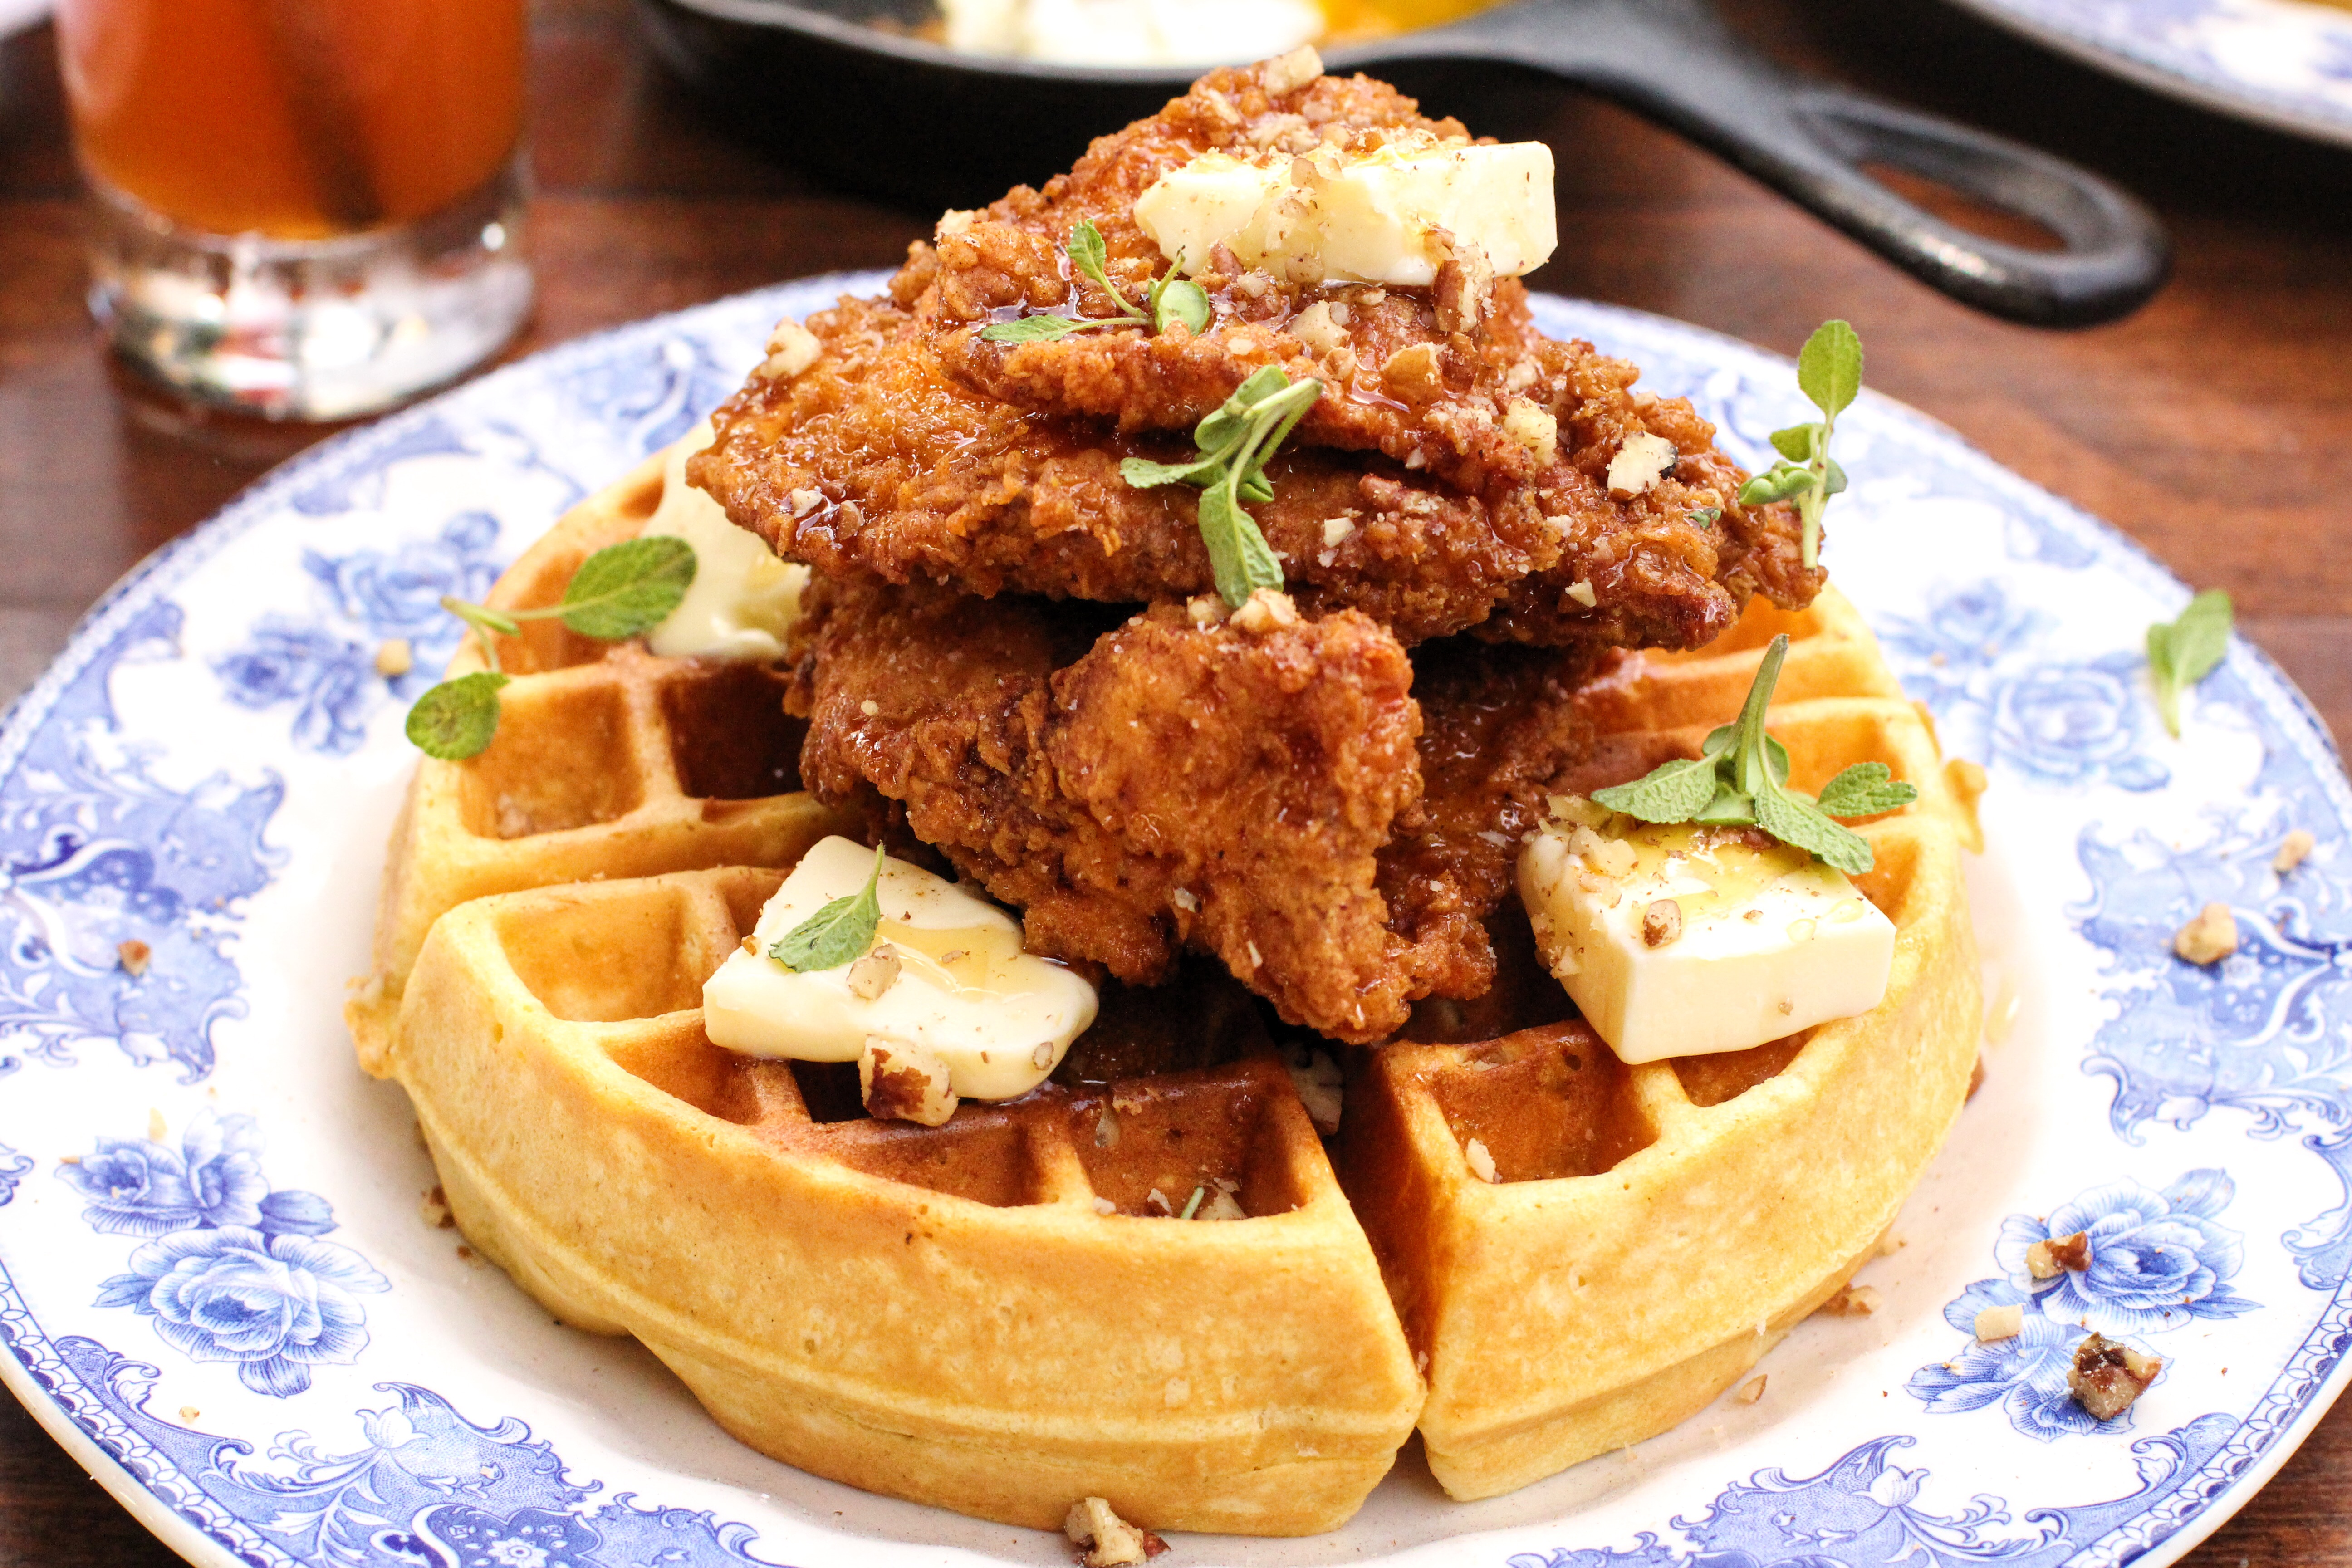 Chicken & Waffles from Preux & Proper